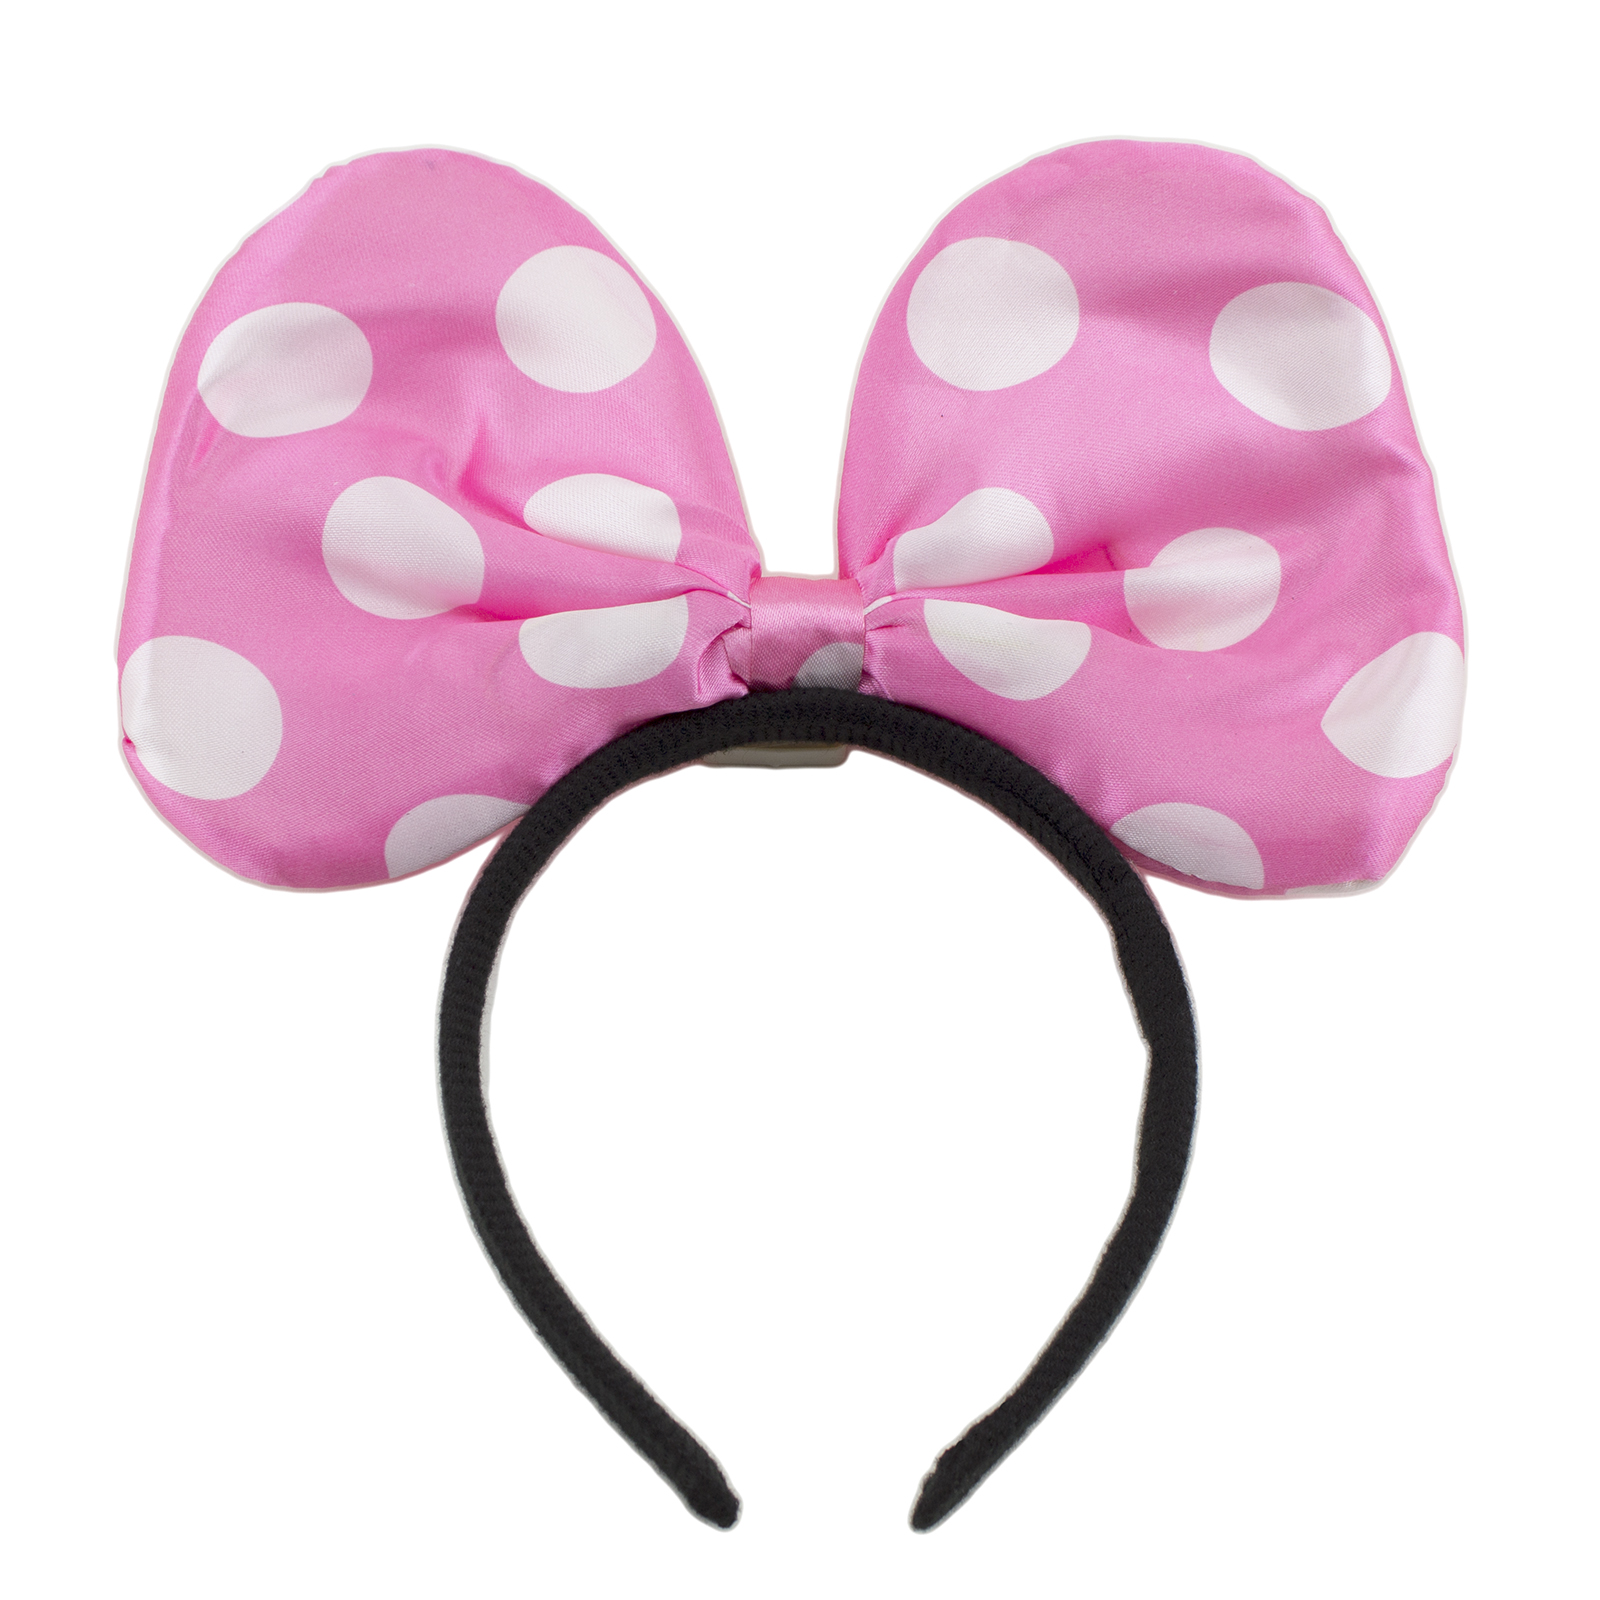 Minnie Mickey Mouse Ears Light Up Bow Headbands Flashing LED Party ...